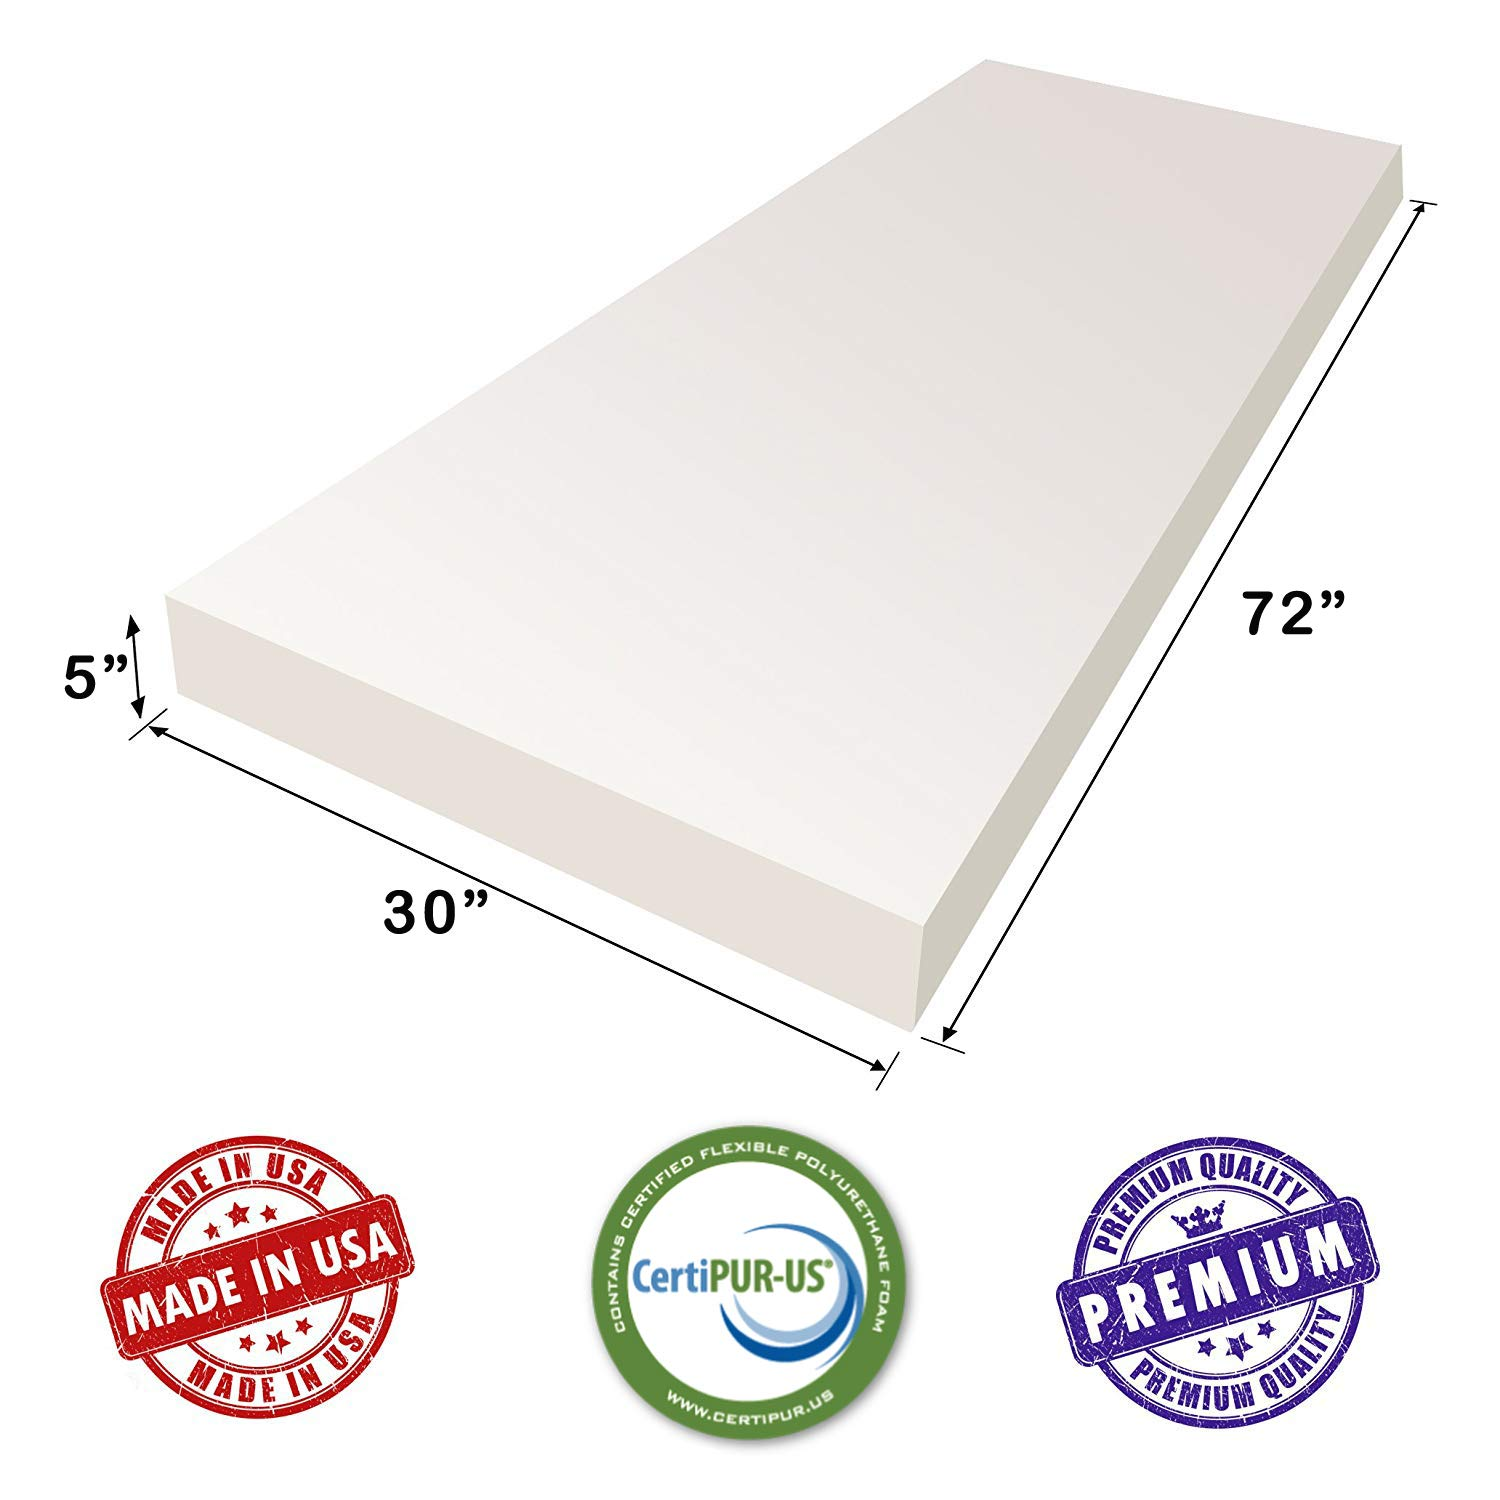 AK TRADING CO. 5'' H X 30'' W x 72''L Upholstery Foam Cushion CertiPUR-US Certified. (Seat Replacement, Upholstery Sheet, Foam Padding)